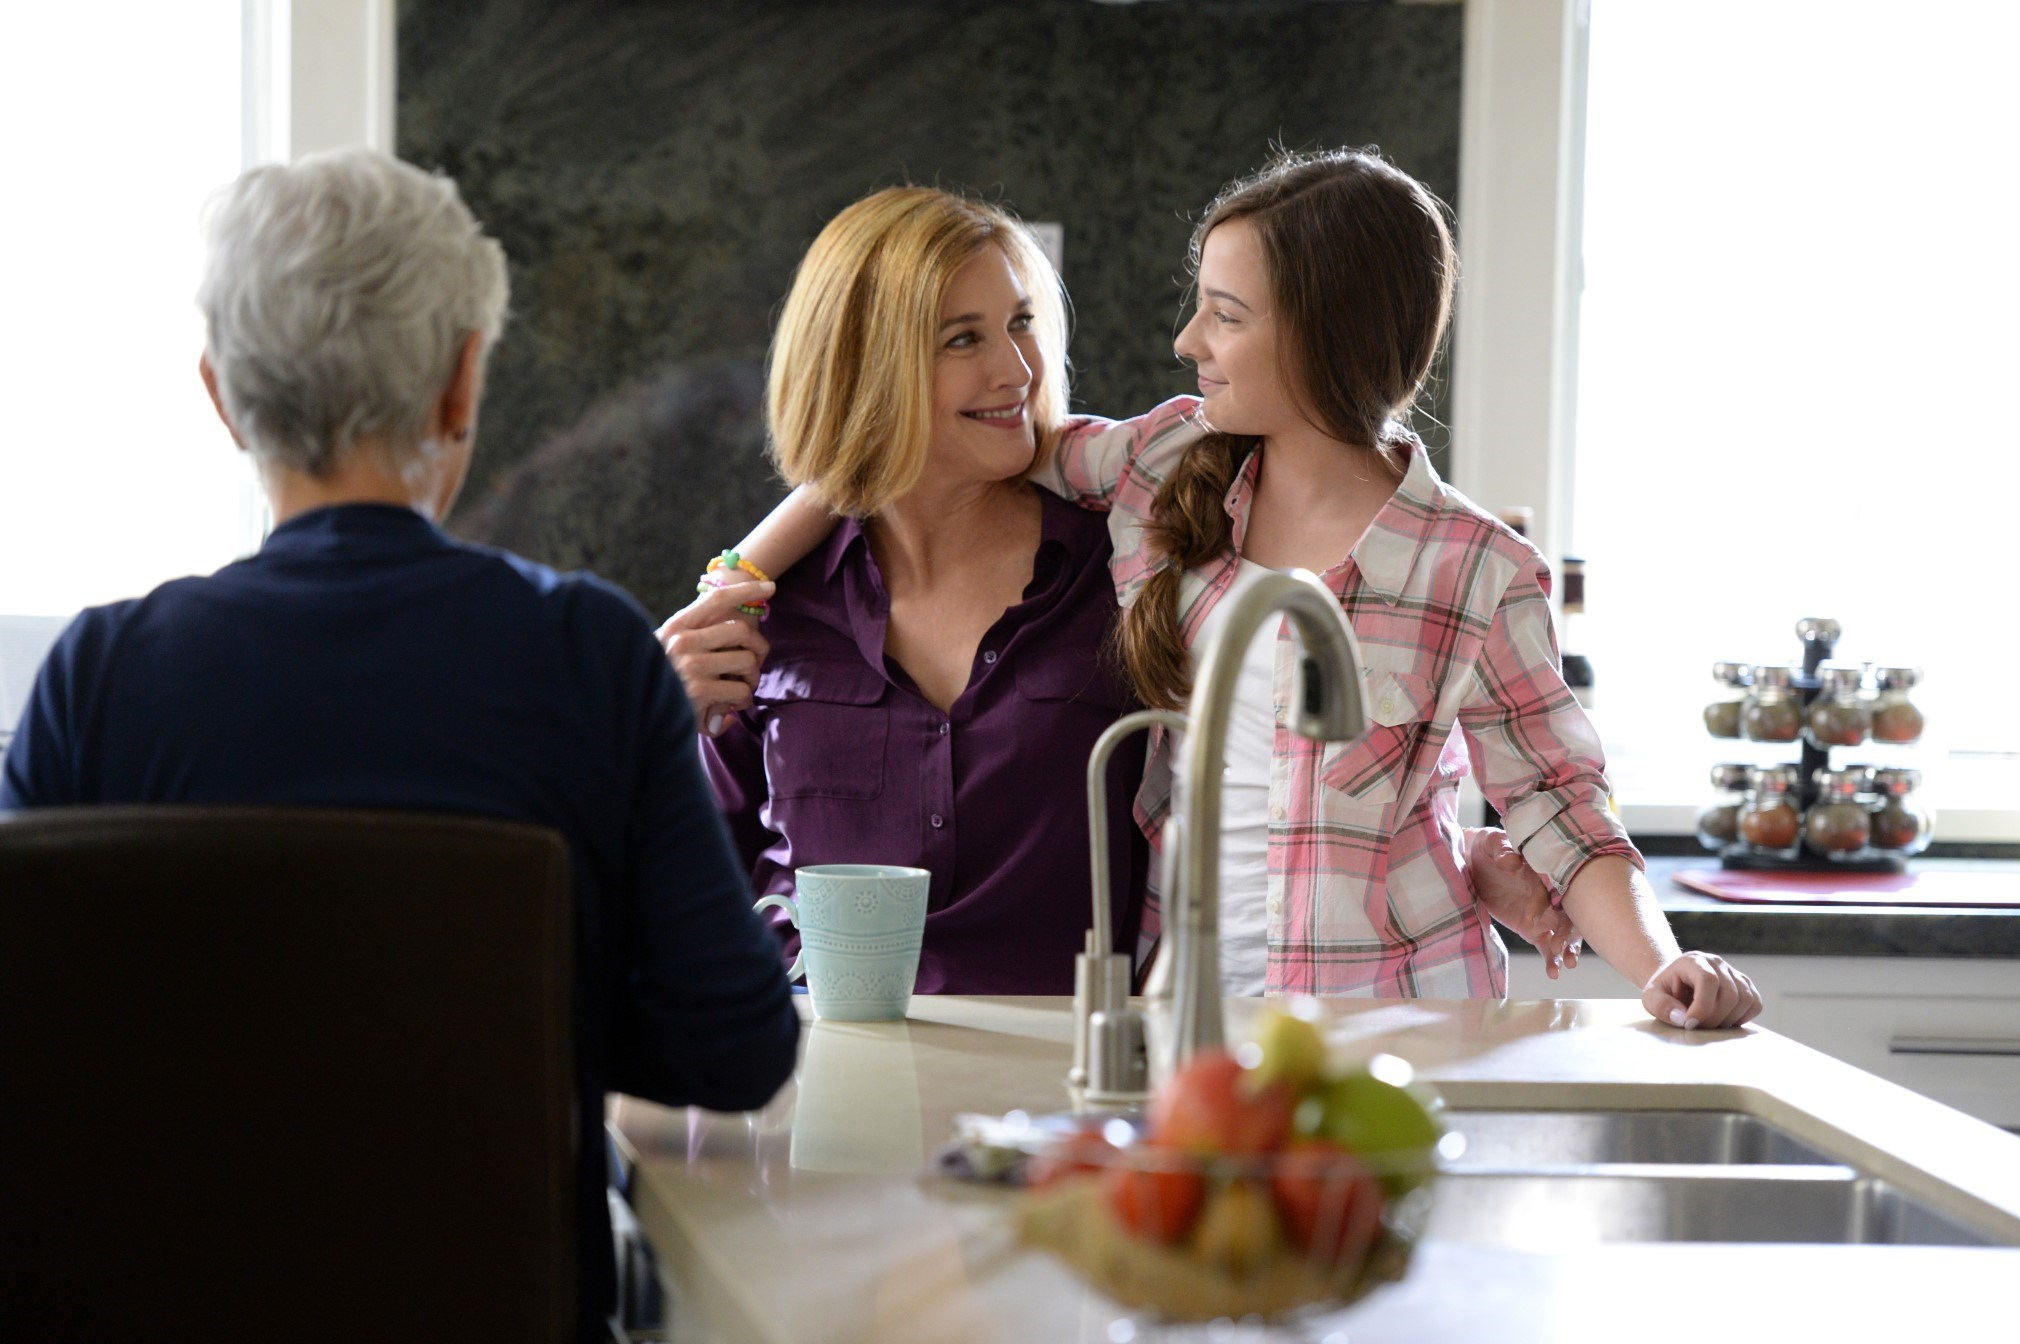 Pfizer brings humor to menopause marketing